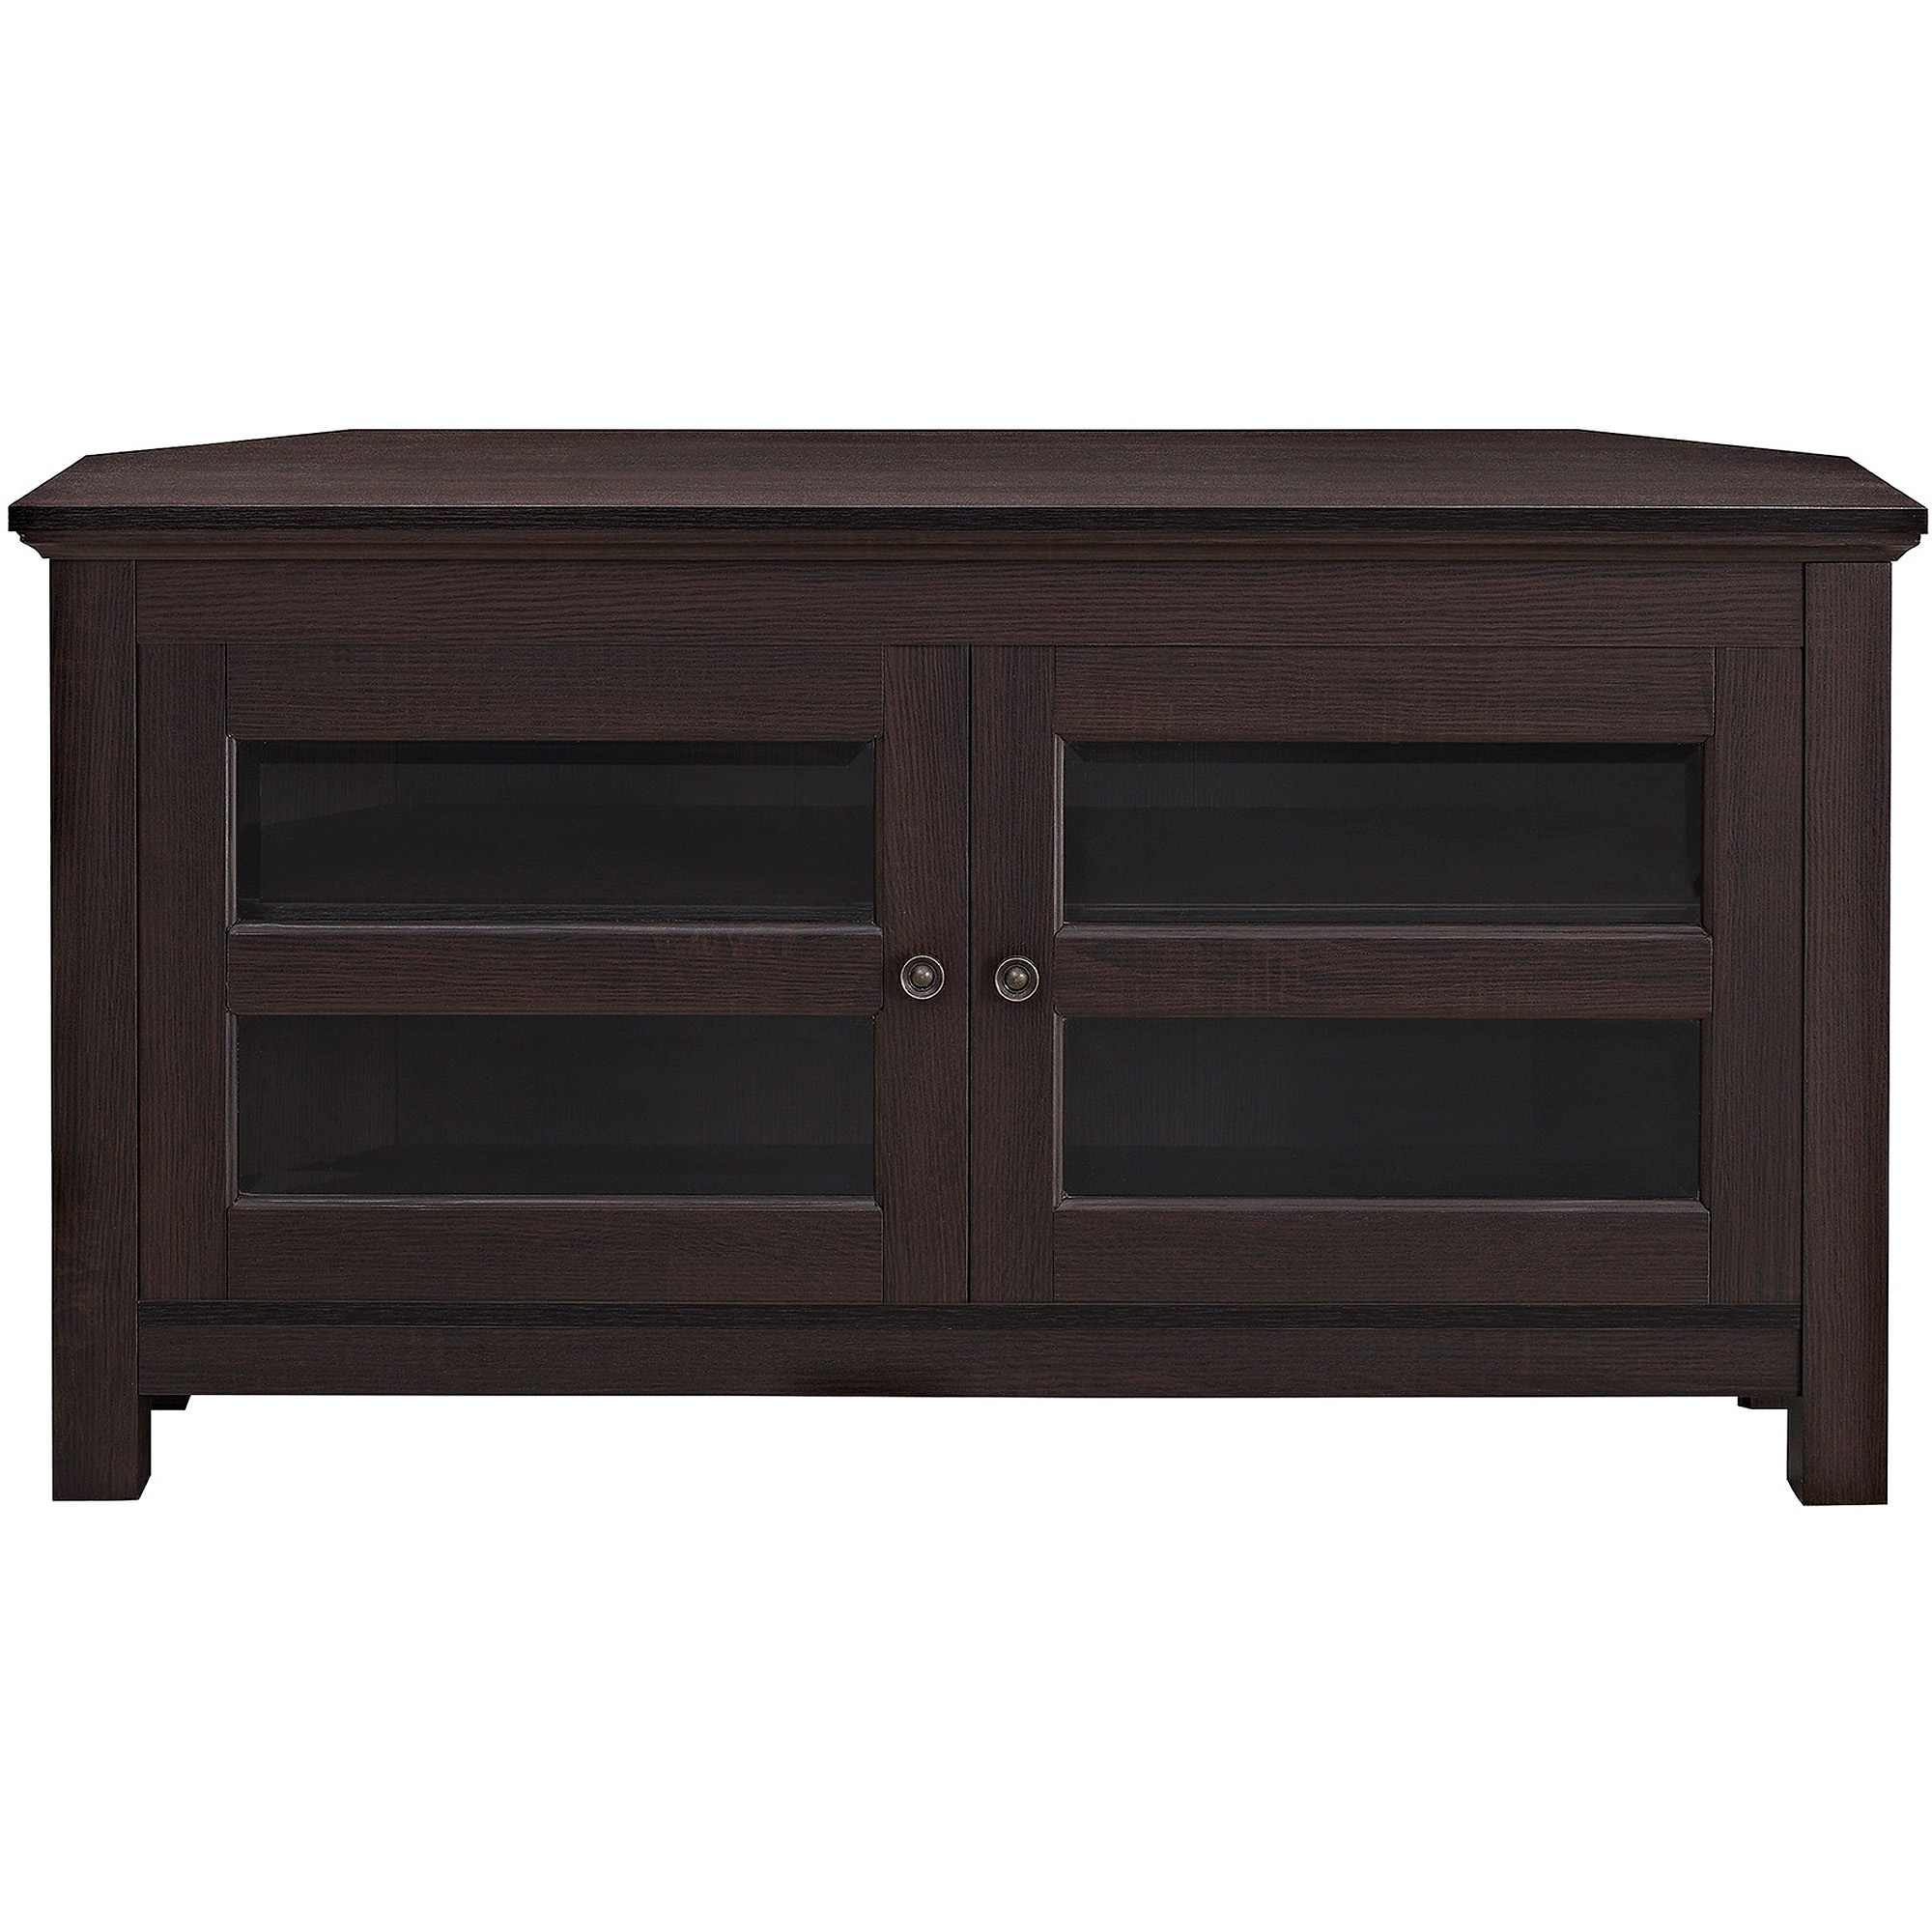 "Cordoba Tv Stands Throughout Most Current We Furniture 44"" Cordoba Corner Tv Stand Console Espresso (View 7 of 20)"